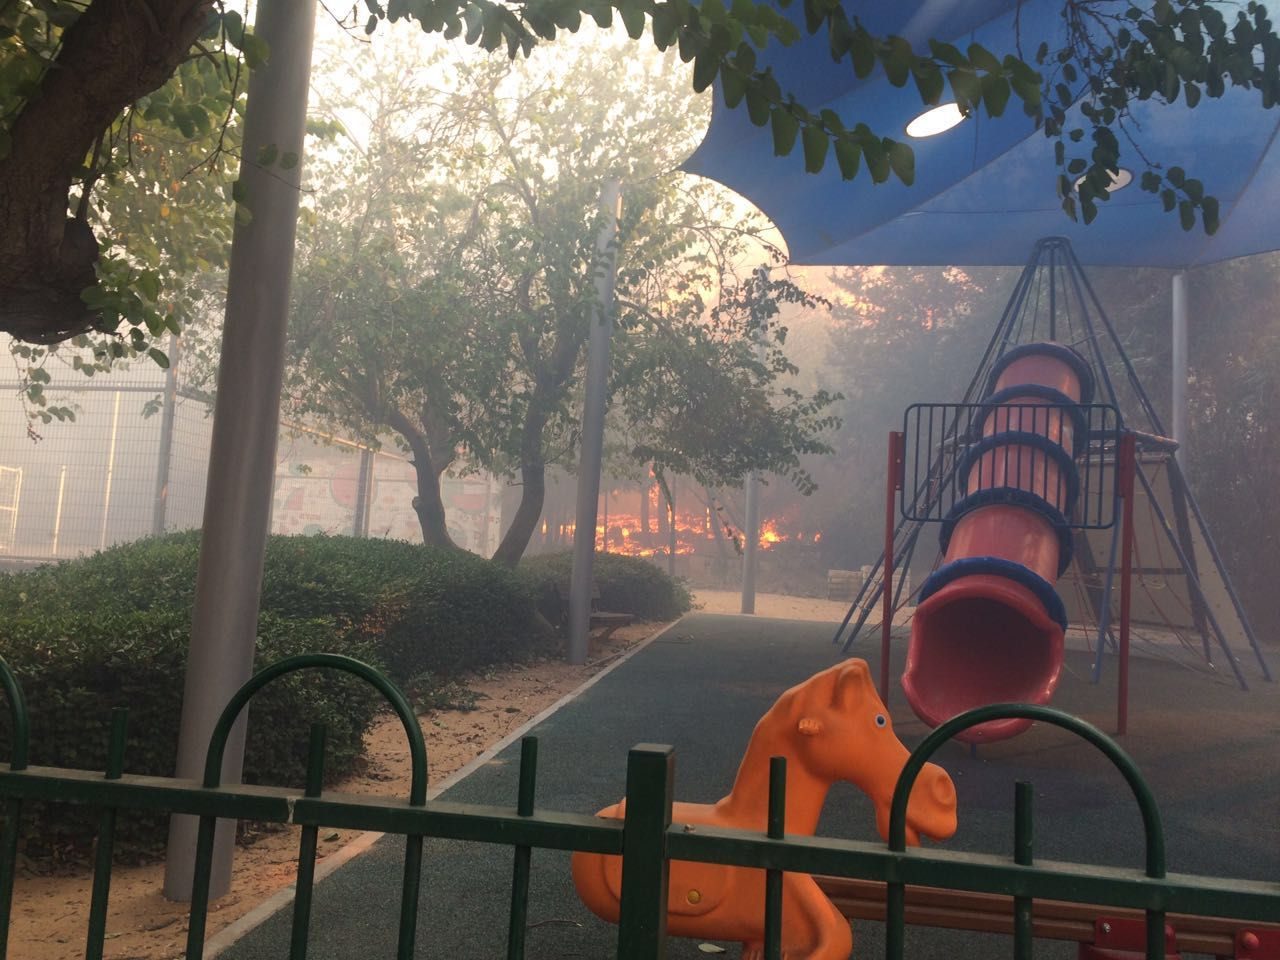 Flames and smoke at a children's playground in Zichron Ya'akov on November 22, 2016